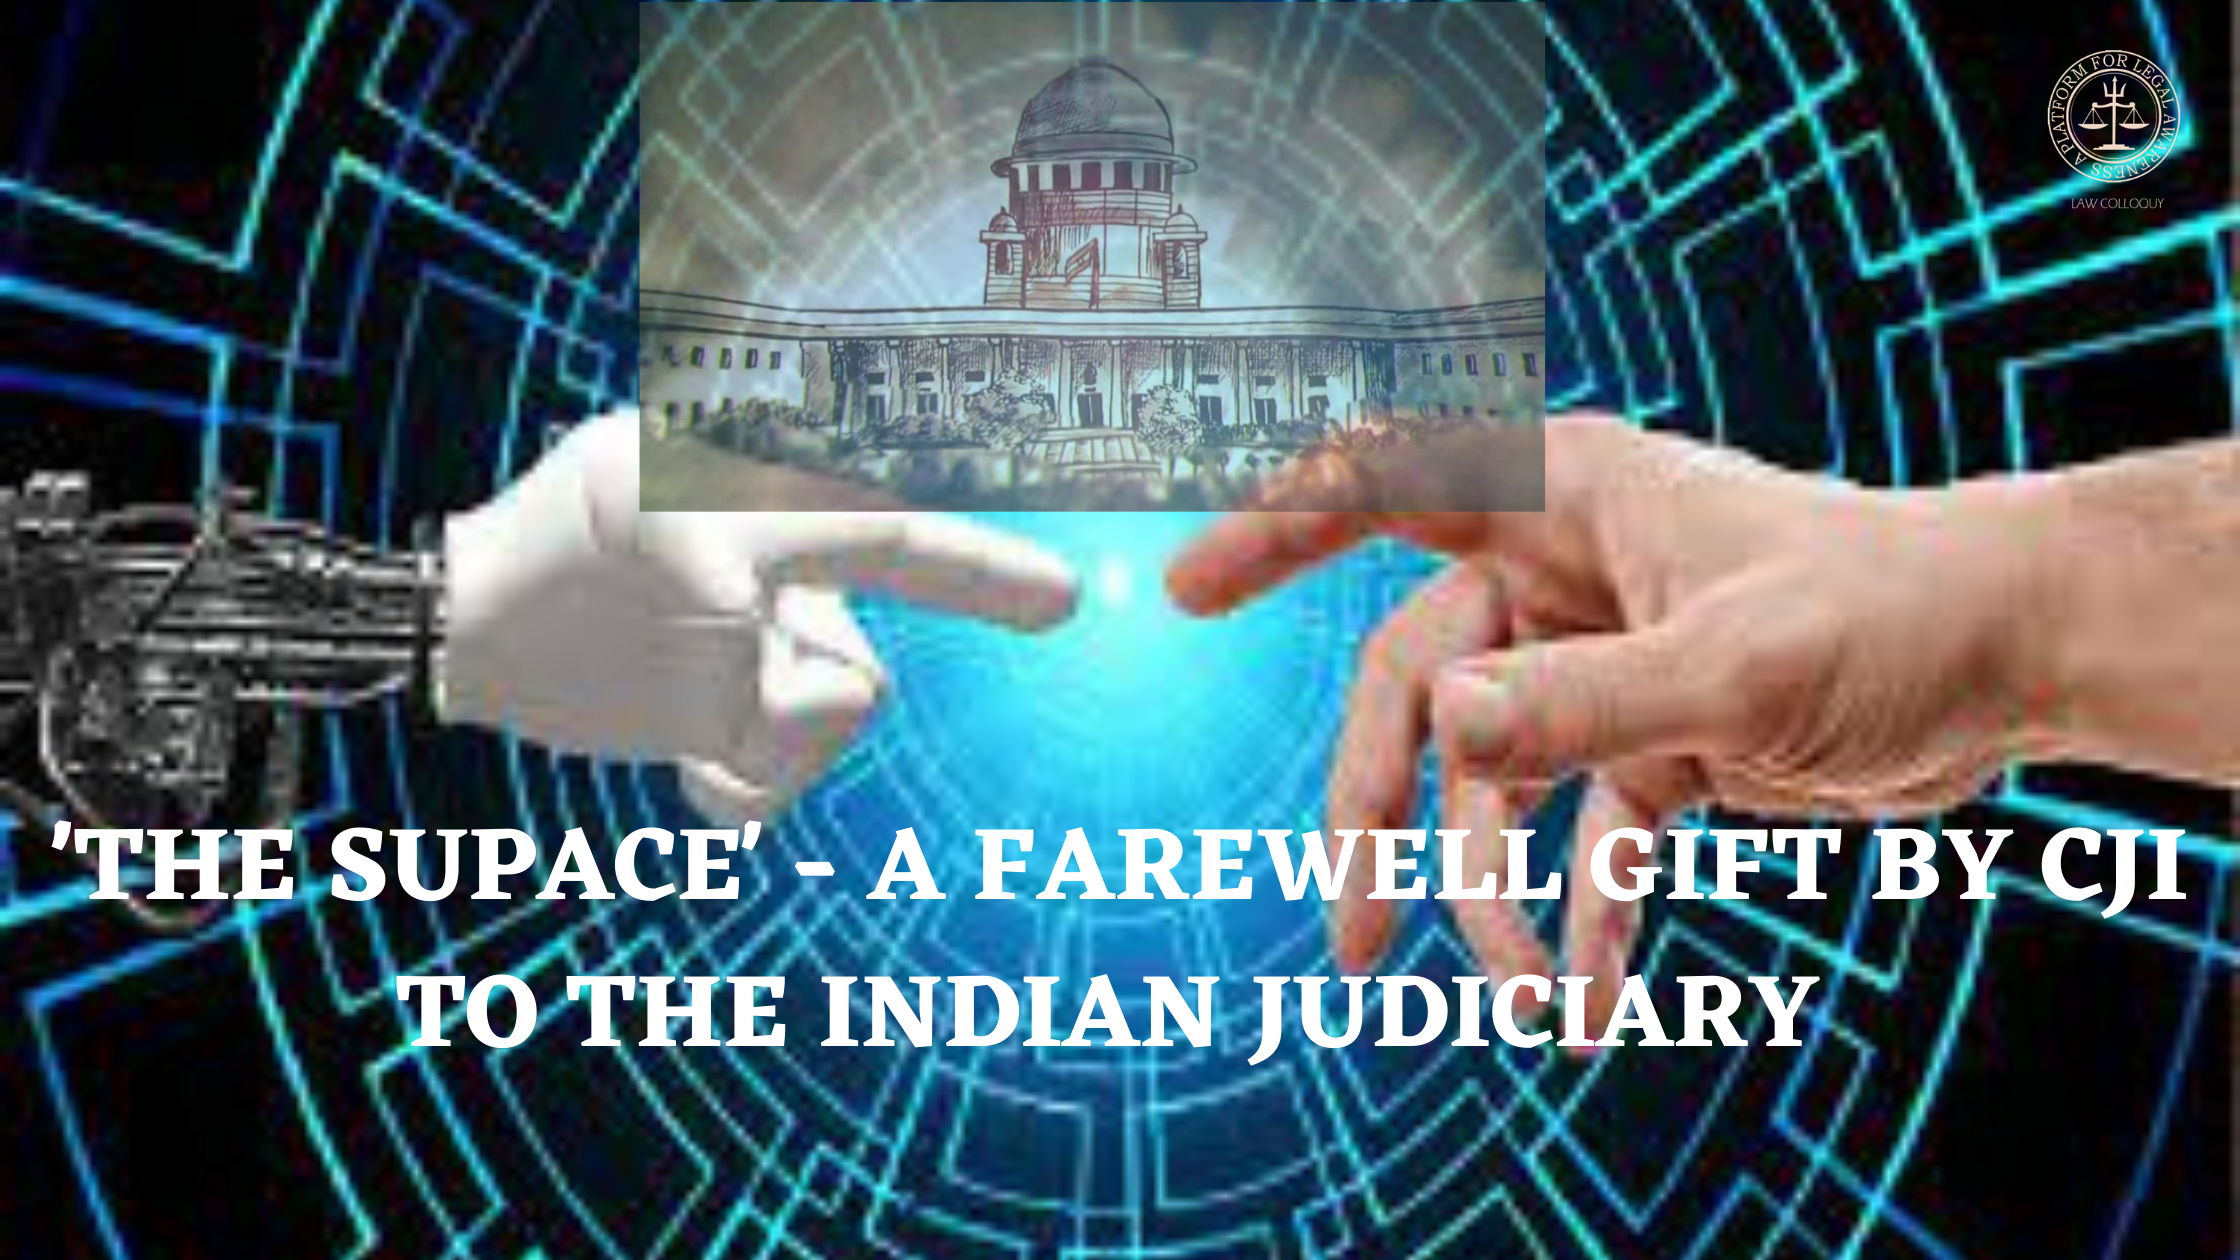 THE SUPACE- A FAREWELL GIFT BY CJI TO THE INDIAN JUDICIARY